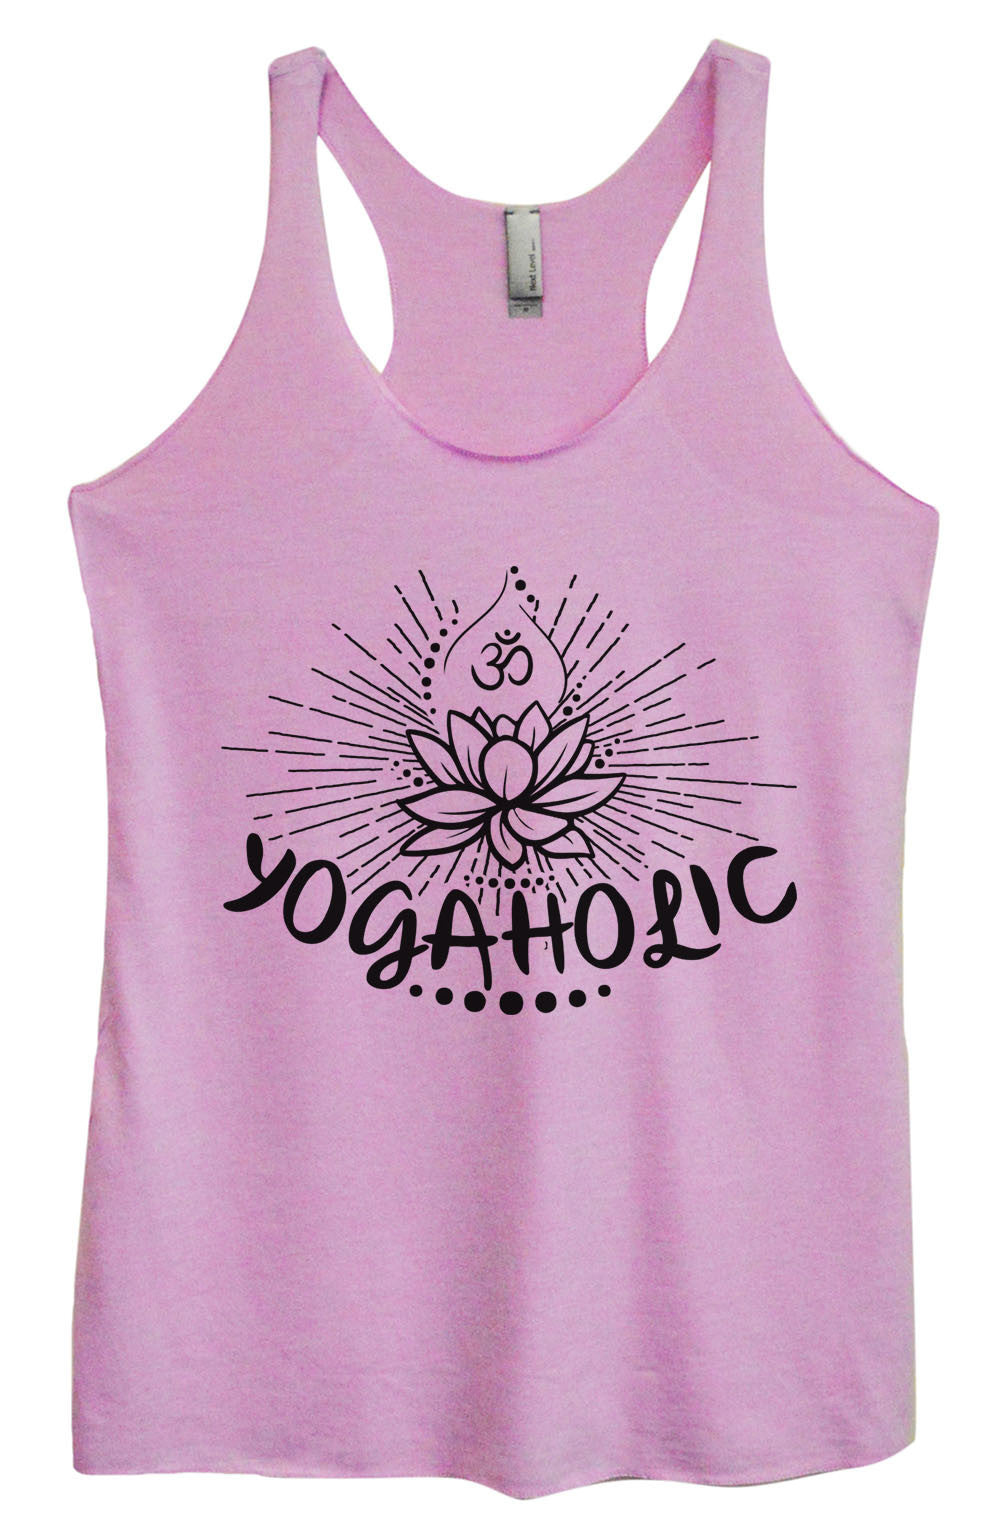 Womens Fashion Triblend Tank Top - Yogaholic - Tri-1017 - Funny Shirts Tank Tops Burnouts and Triblends  - 3